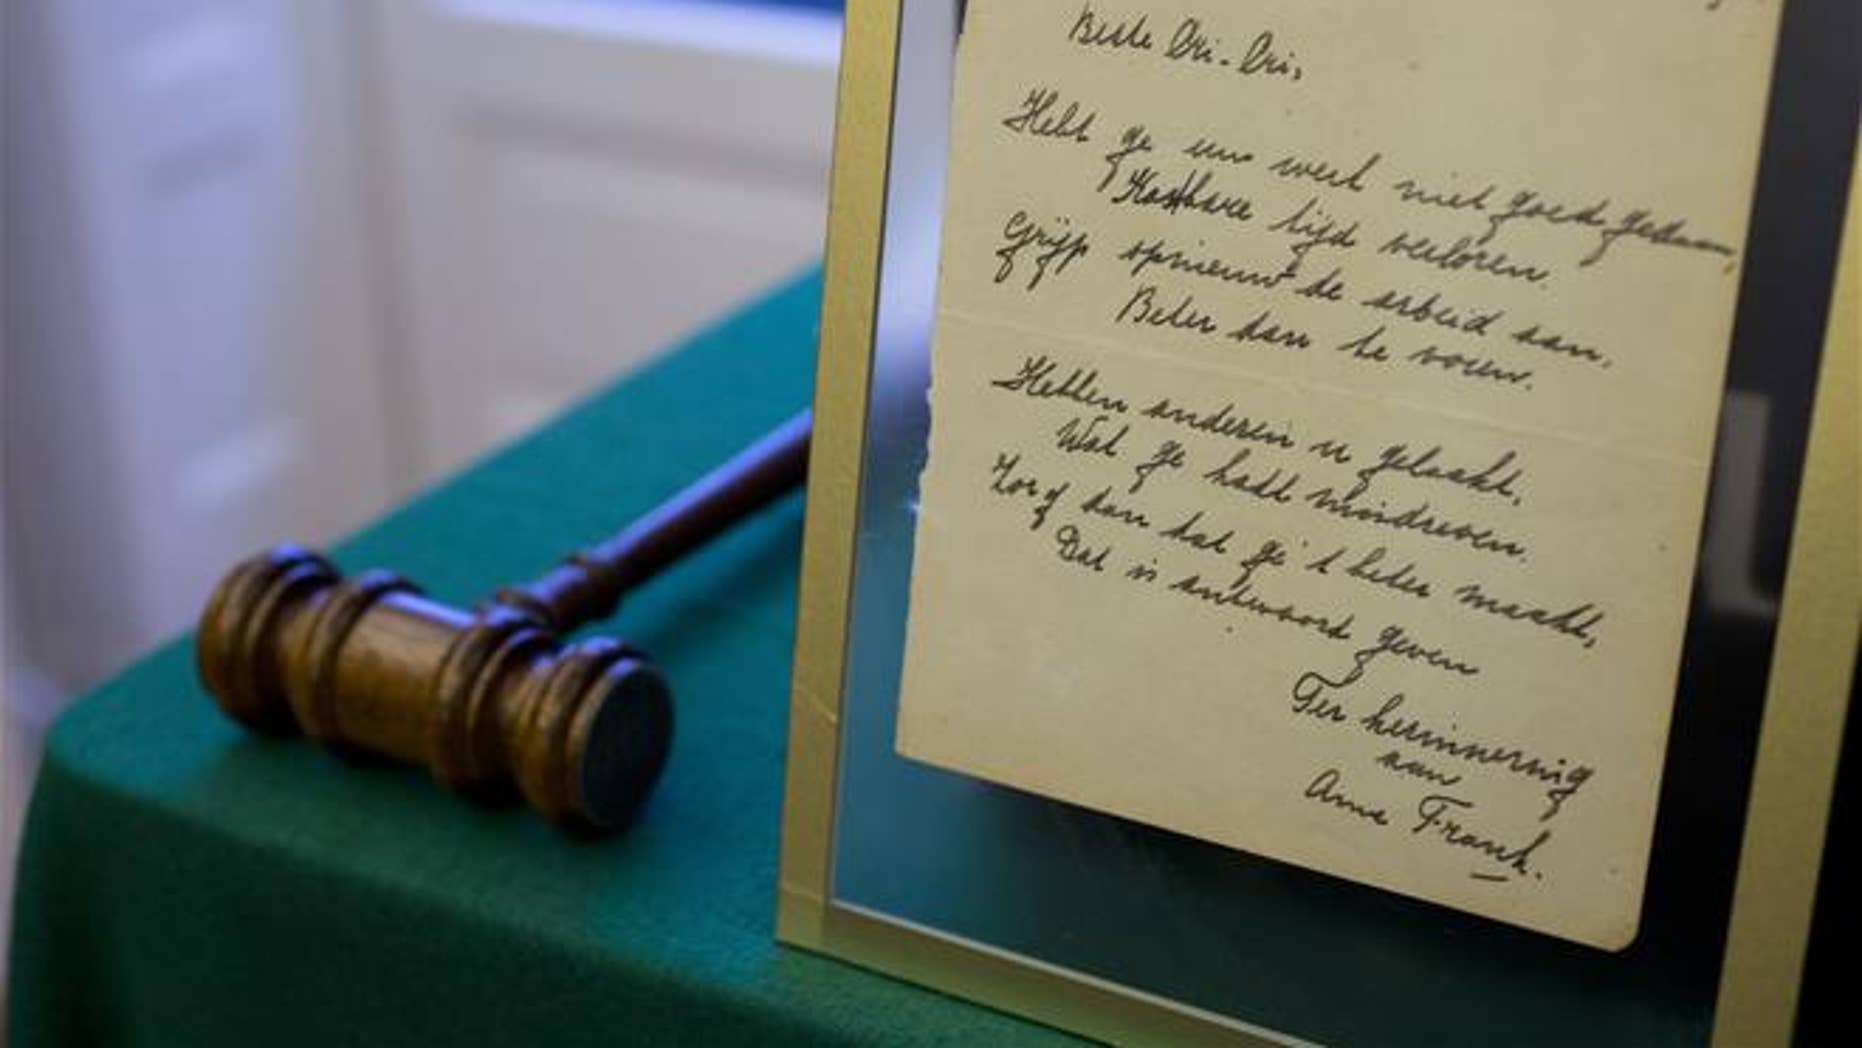 A short poem by Anne Frank is displayed at Bubb Kuyper auction house.